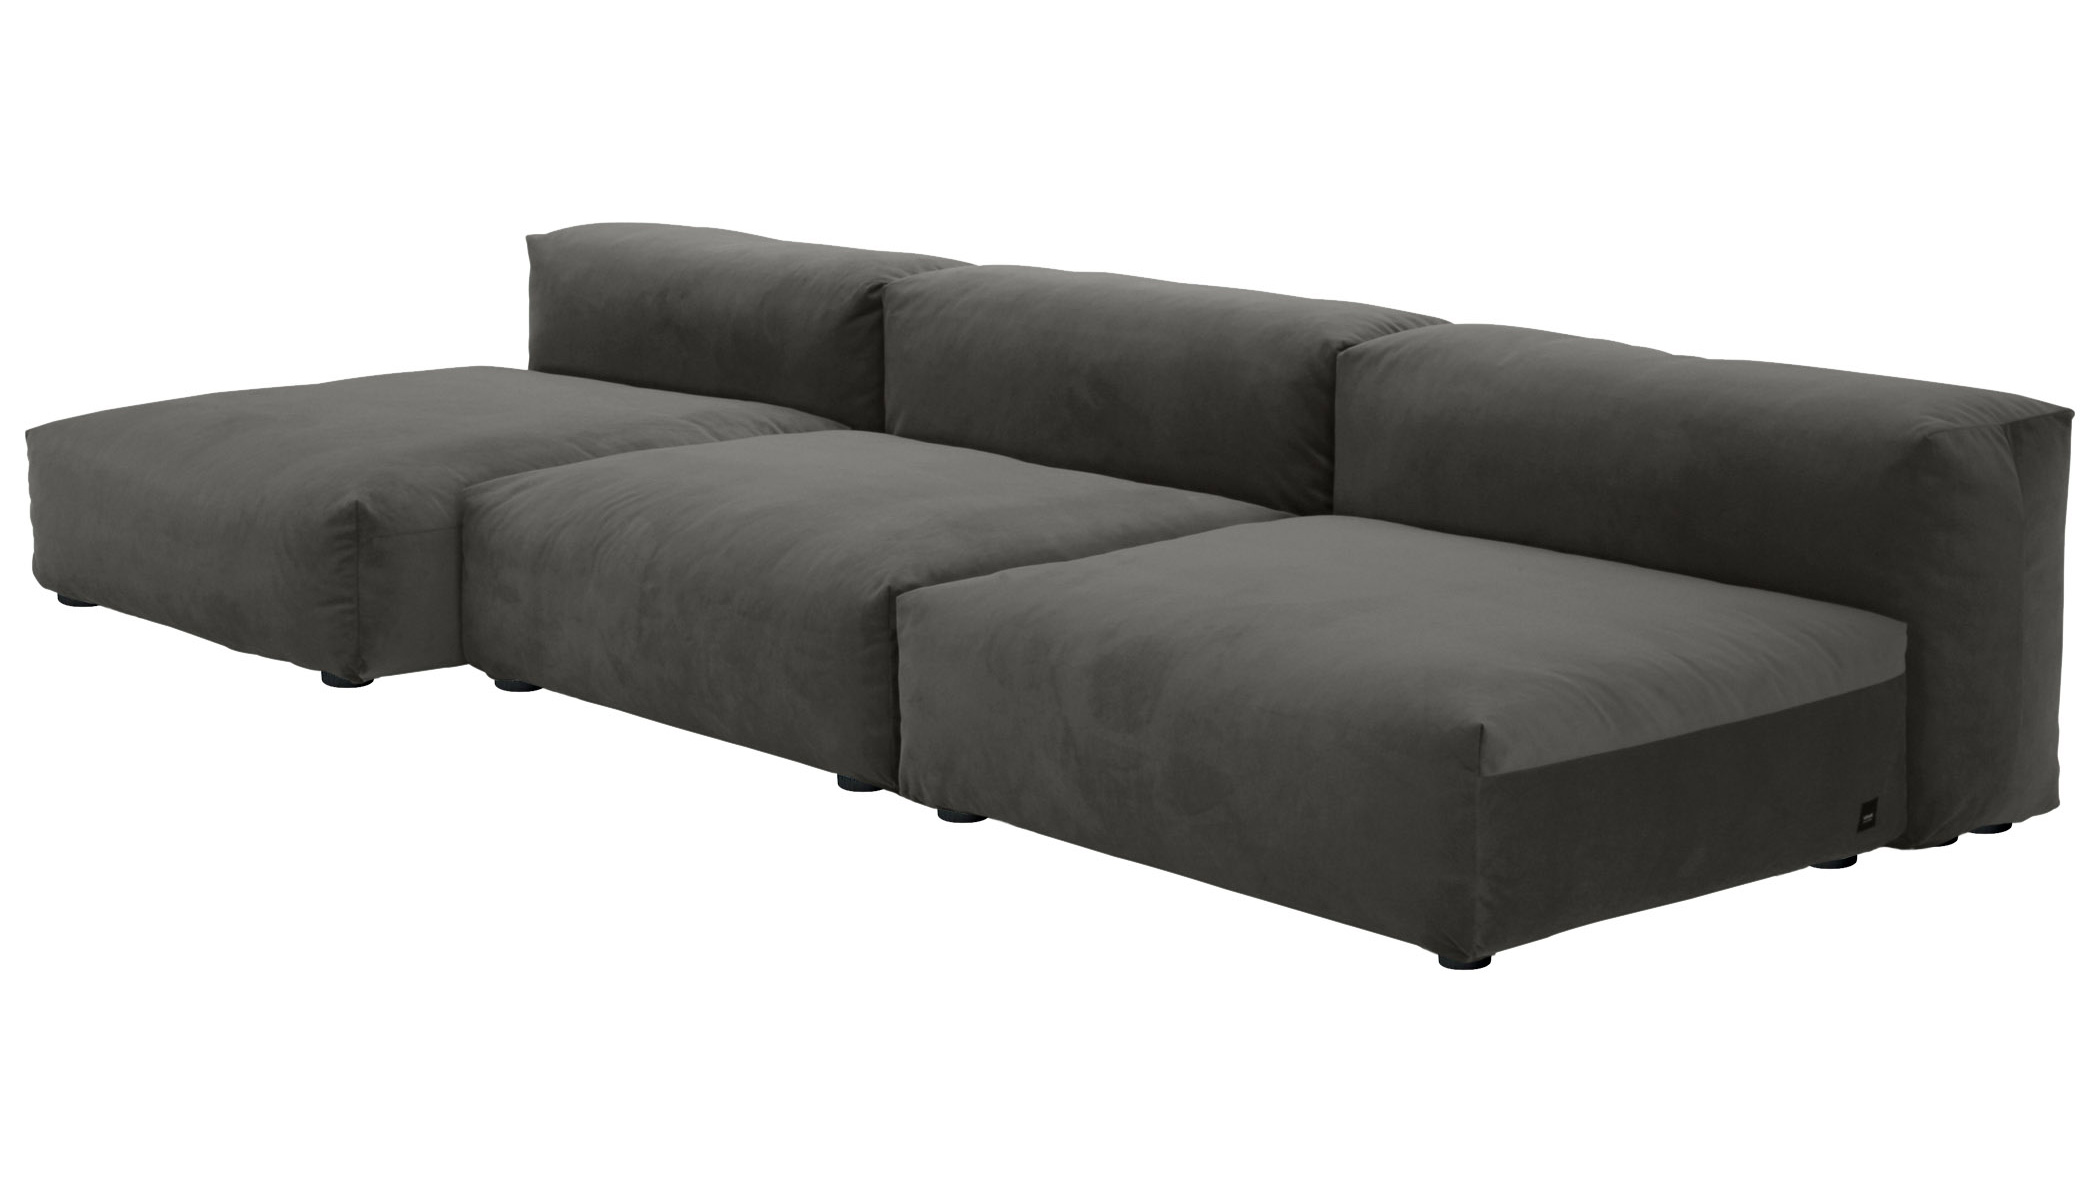 Sofa 1 Large 2 Medium 3 Side Velvet dark grey